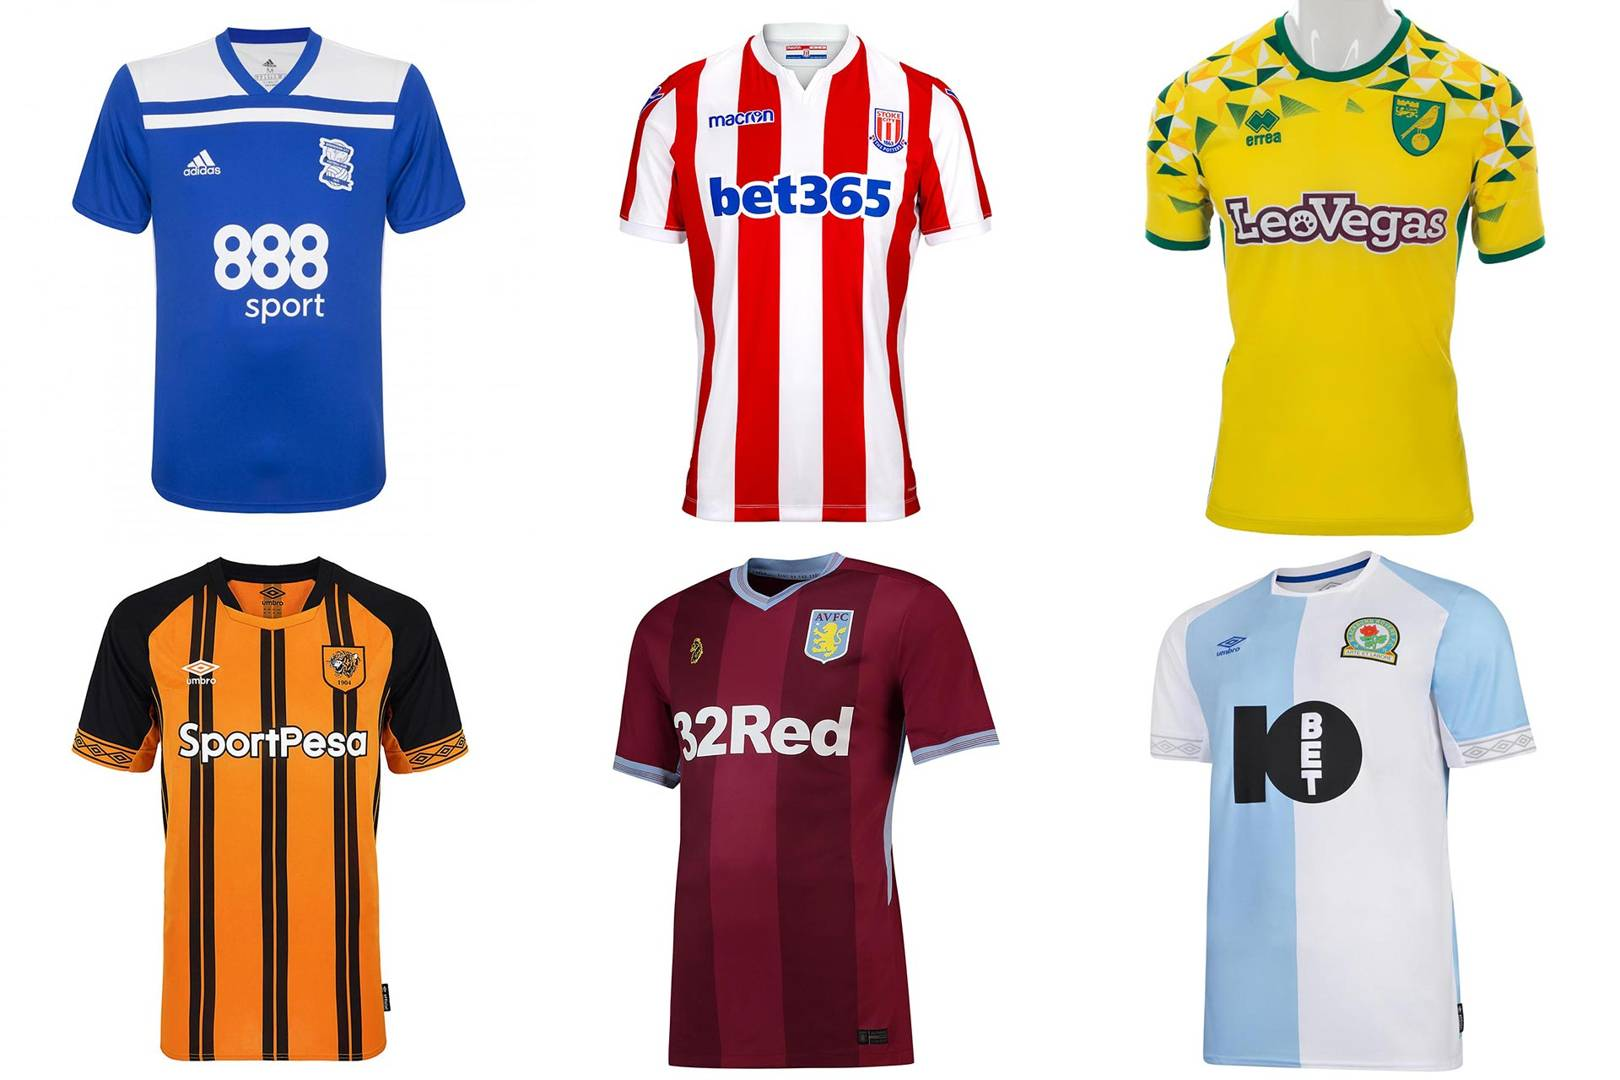 b1625a59a34 Championship kits 2018 19 ranked from worst to best